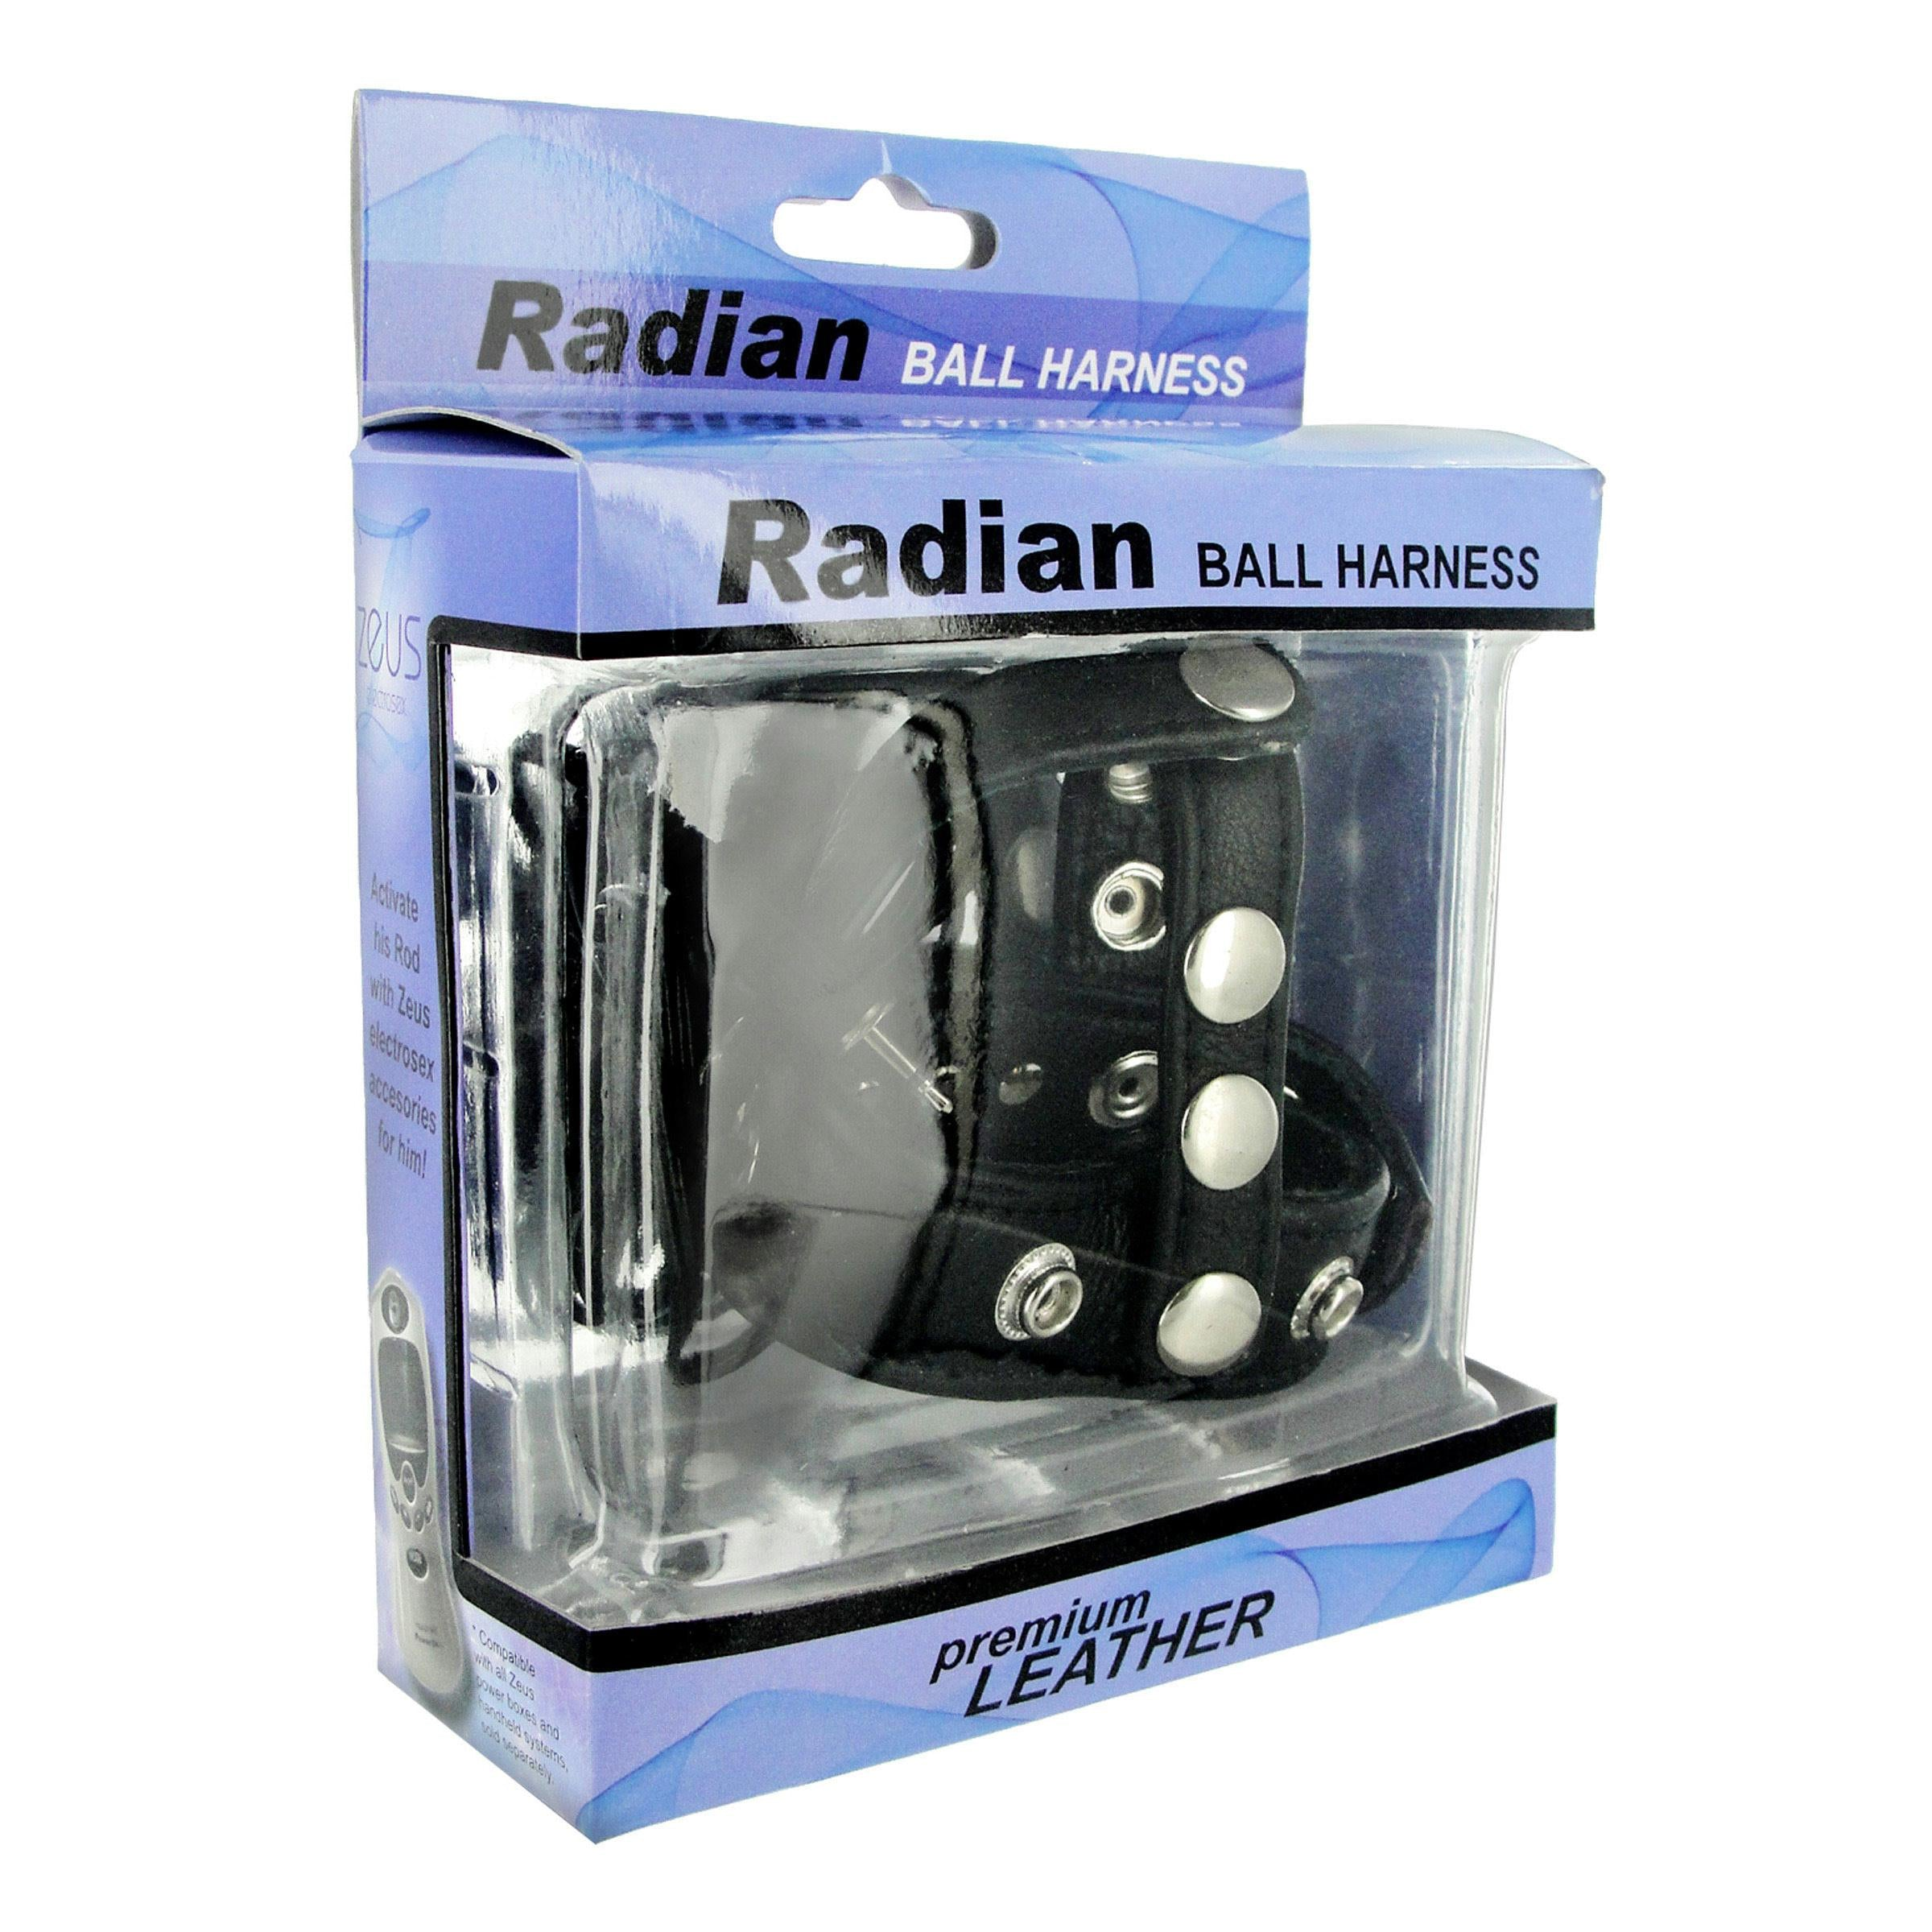 Radian Leather Ball Harness